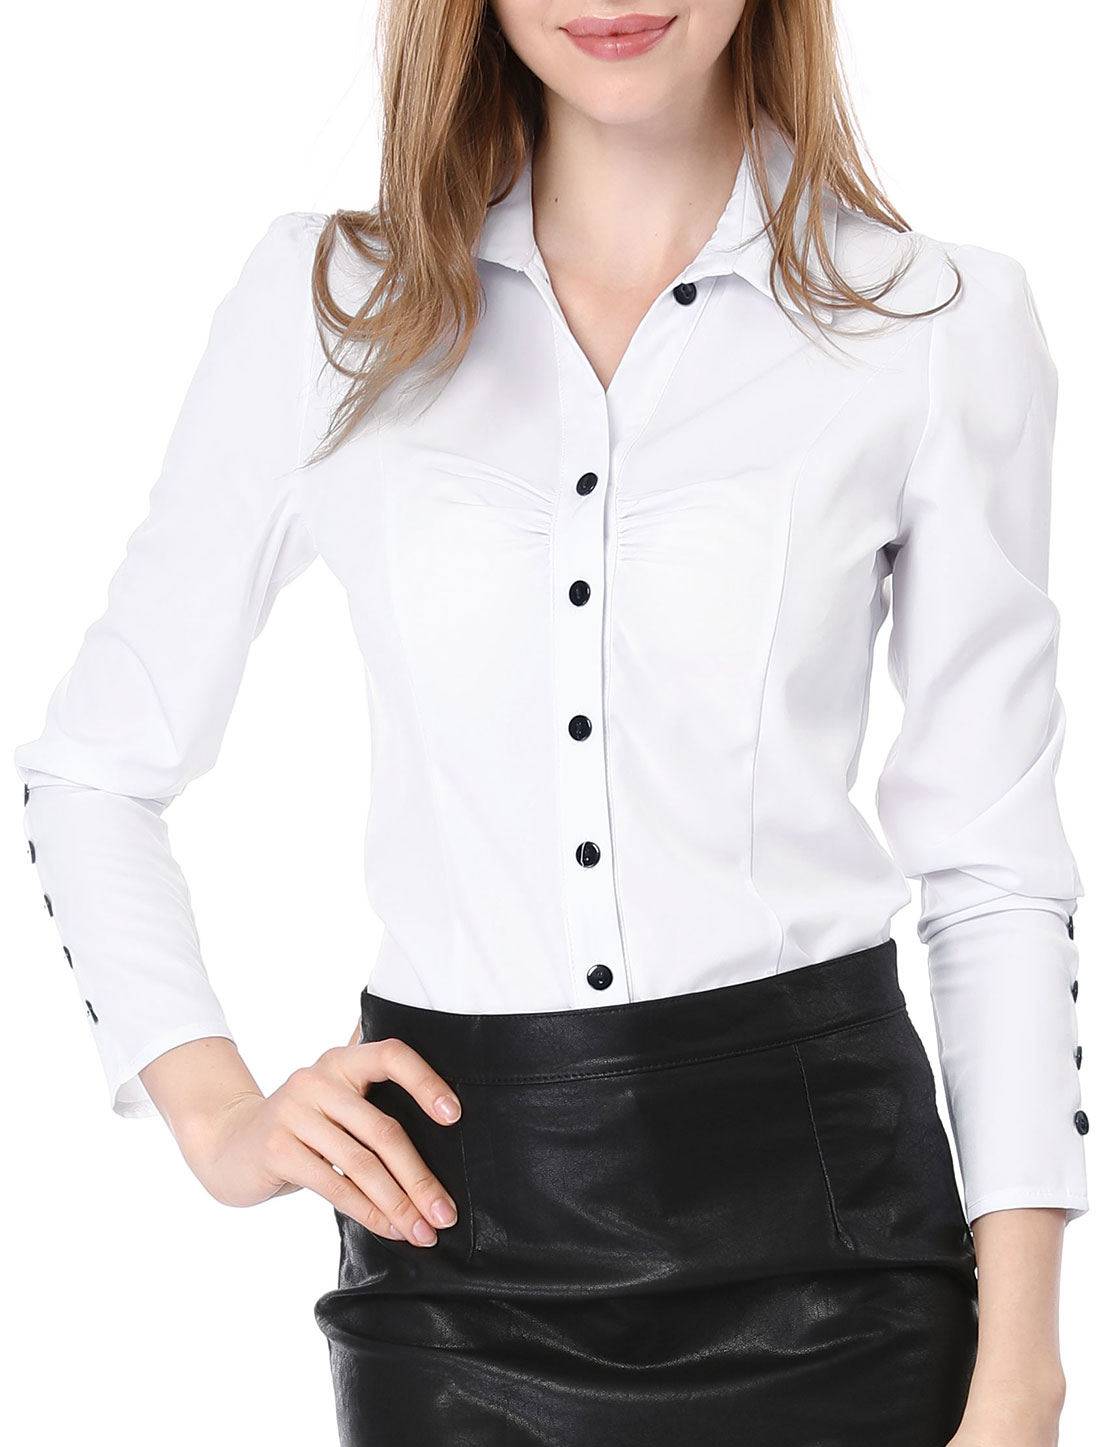 Women Point Collar Single Breasted Casual Shirt White XS